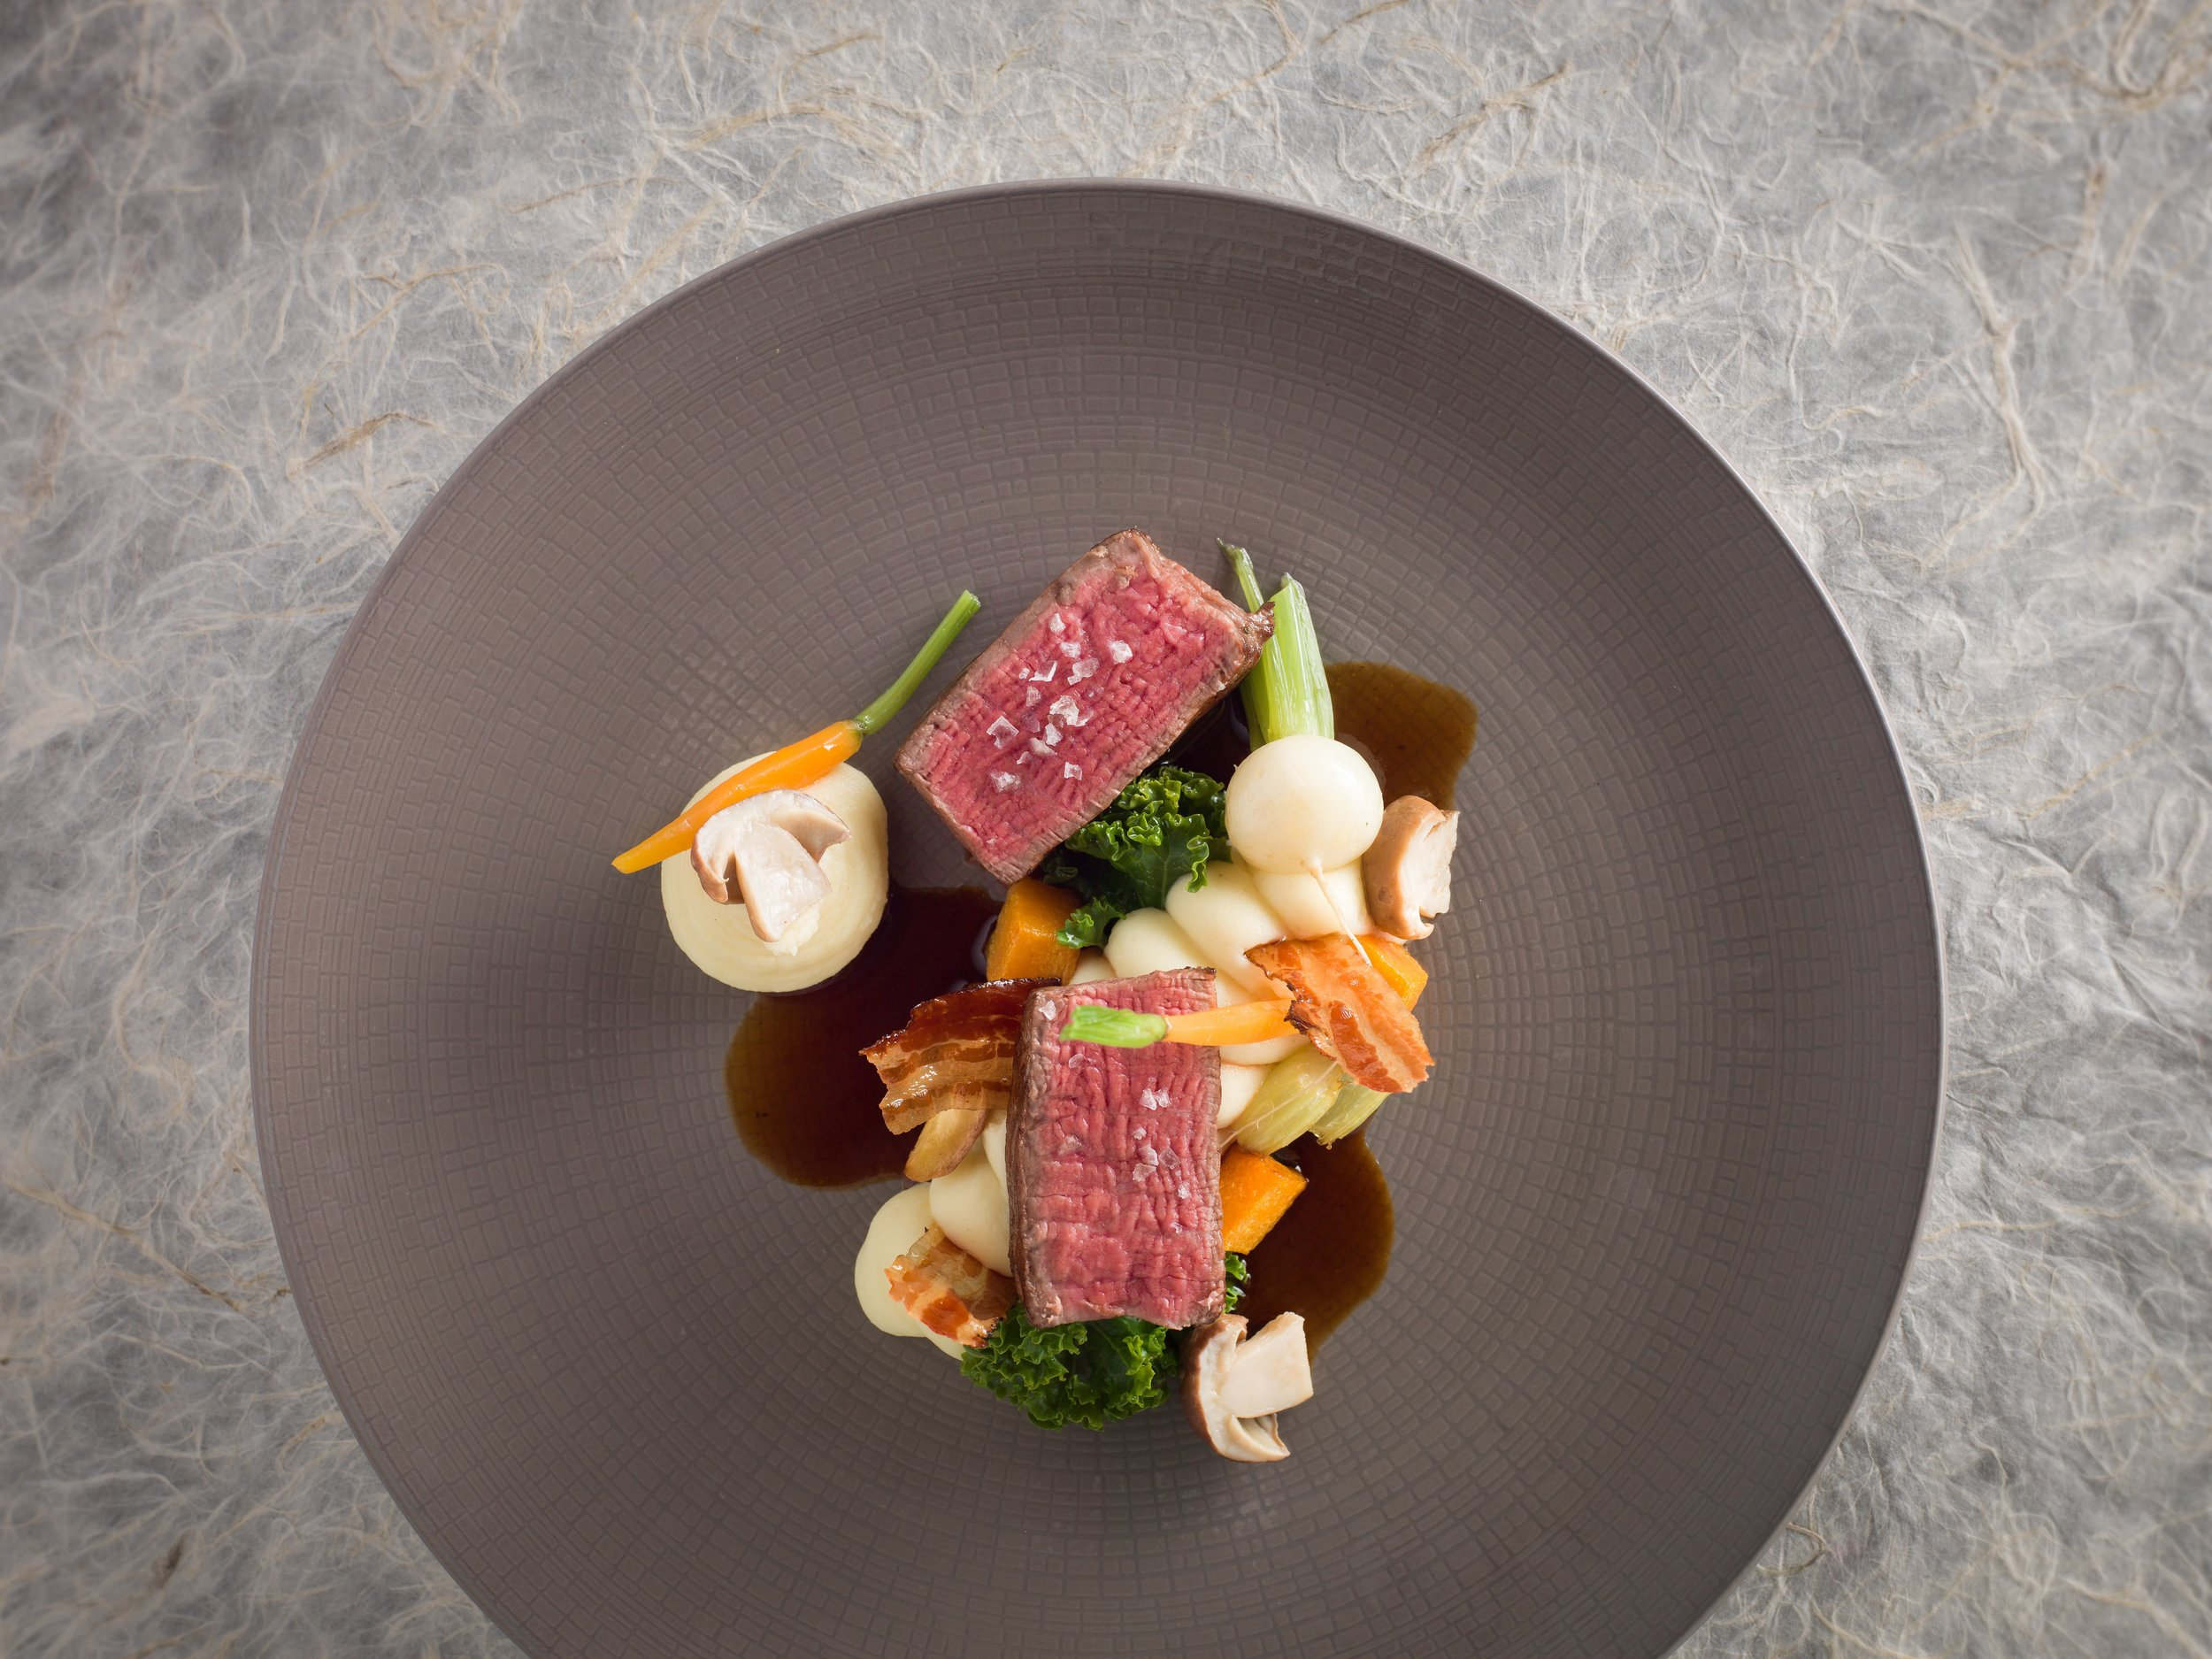 Roast Fillet of Beef with Pomme Purée, Cep Mushrooms, Crispy Pancetta and Baby Carrots-min.jpg